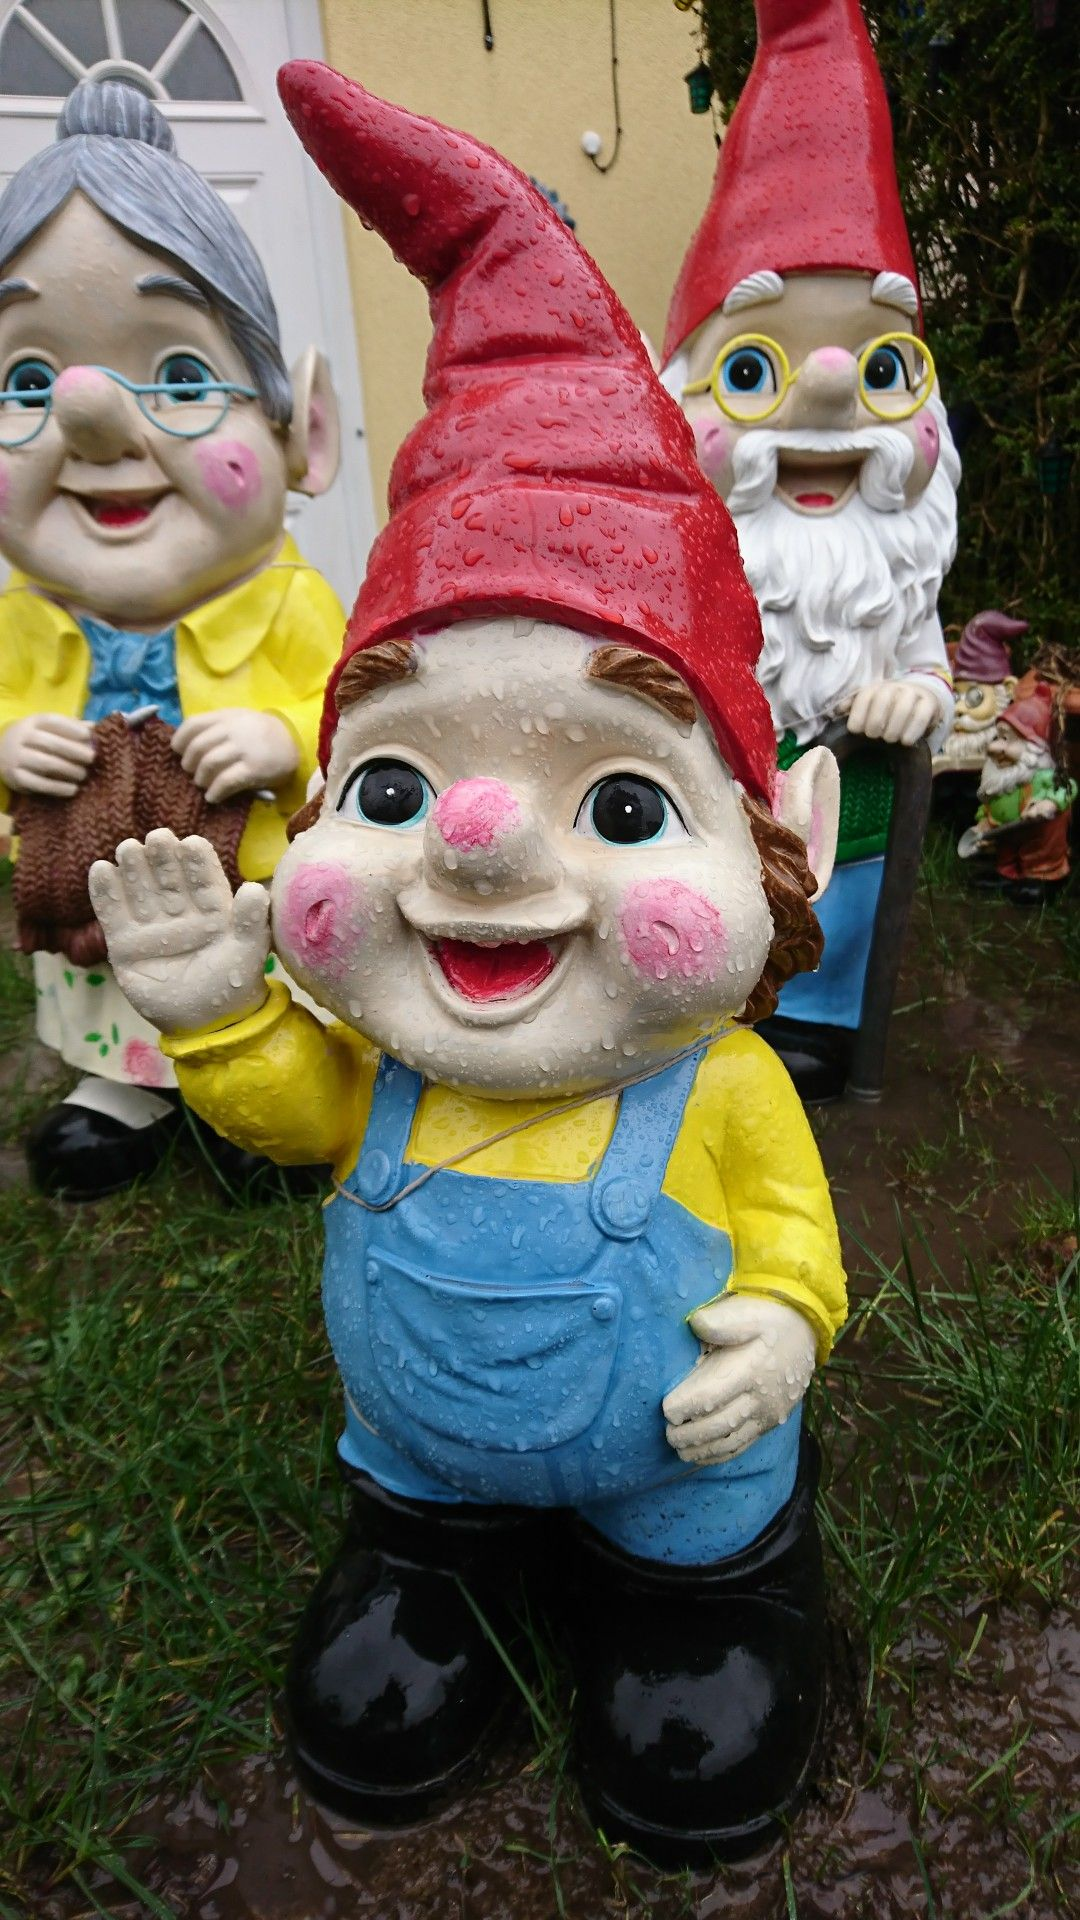 Pin by Vikki Nugent on Asda Gnomes (With images) Asda